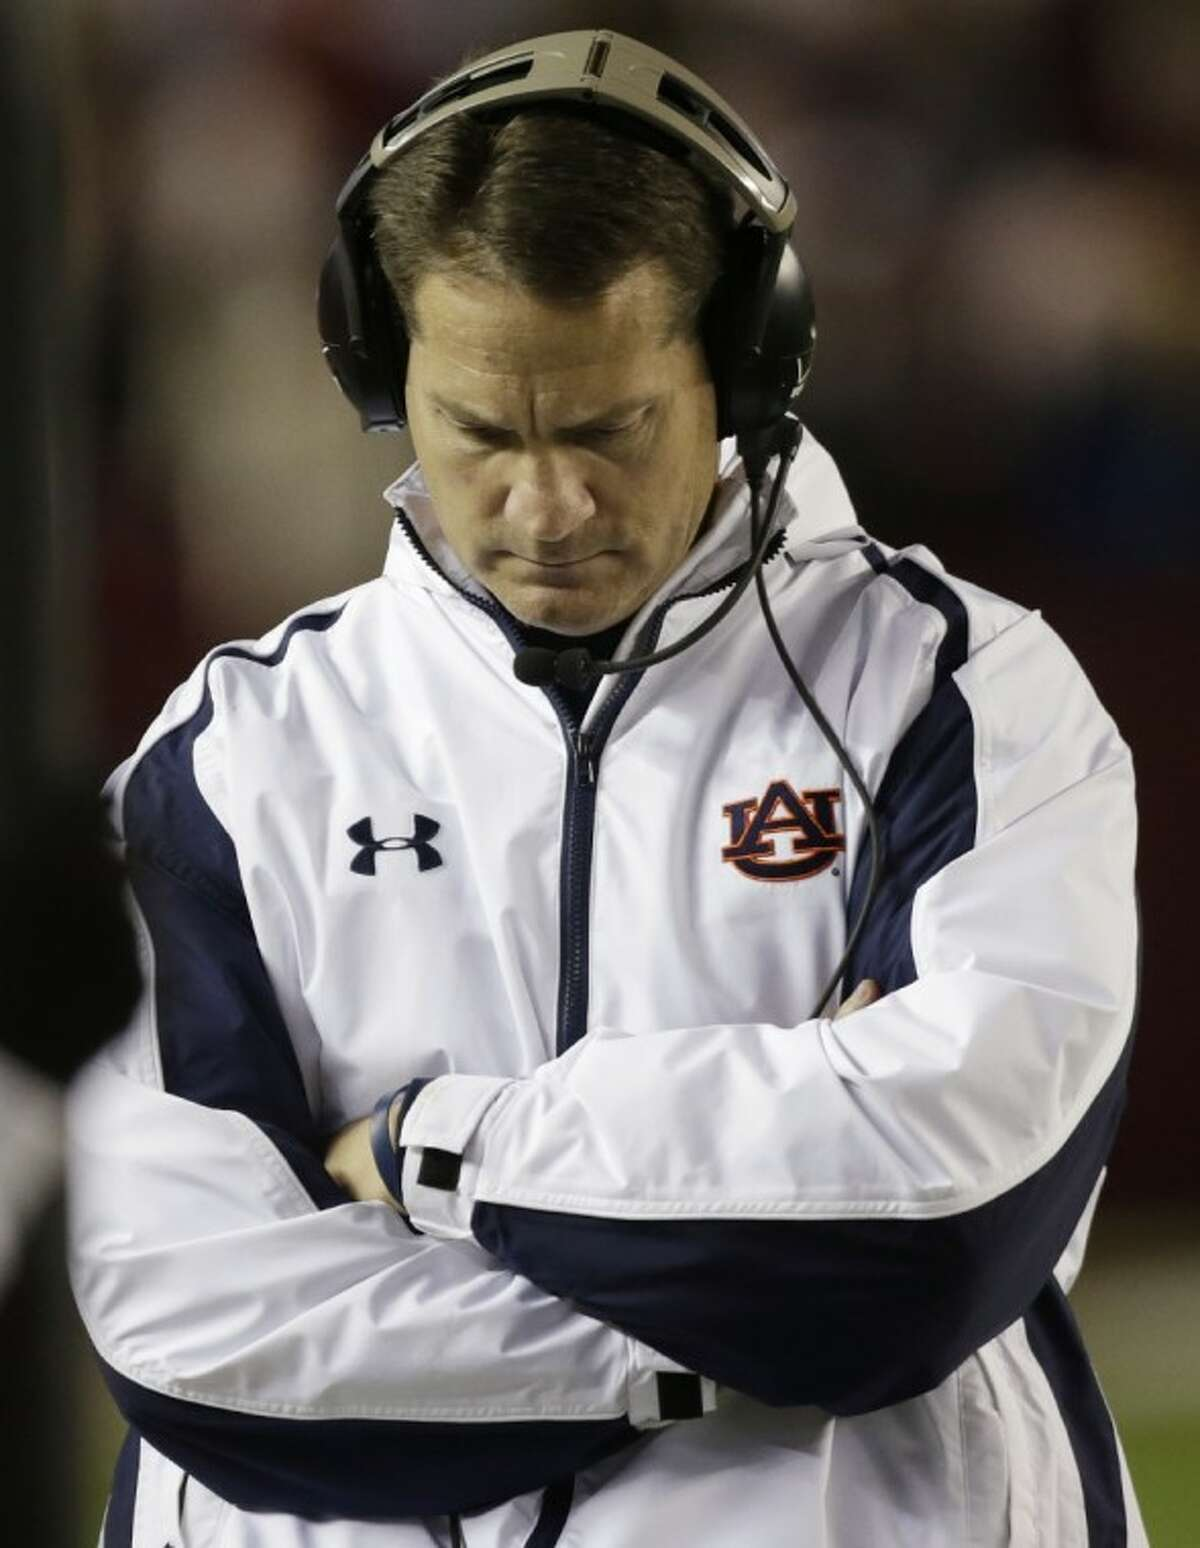 Auburn coach Gene Chizik has been fired after a 3-9 season, including a winless campaign in SEC play.